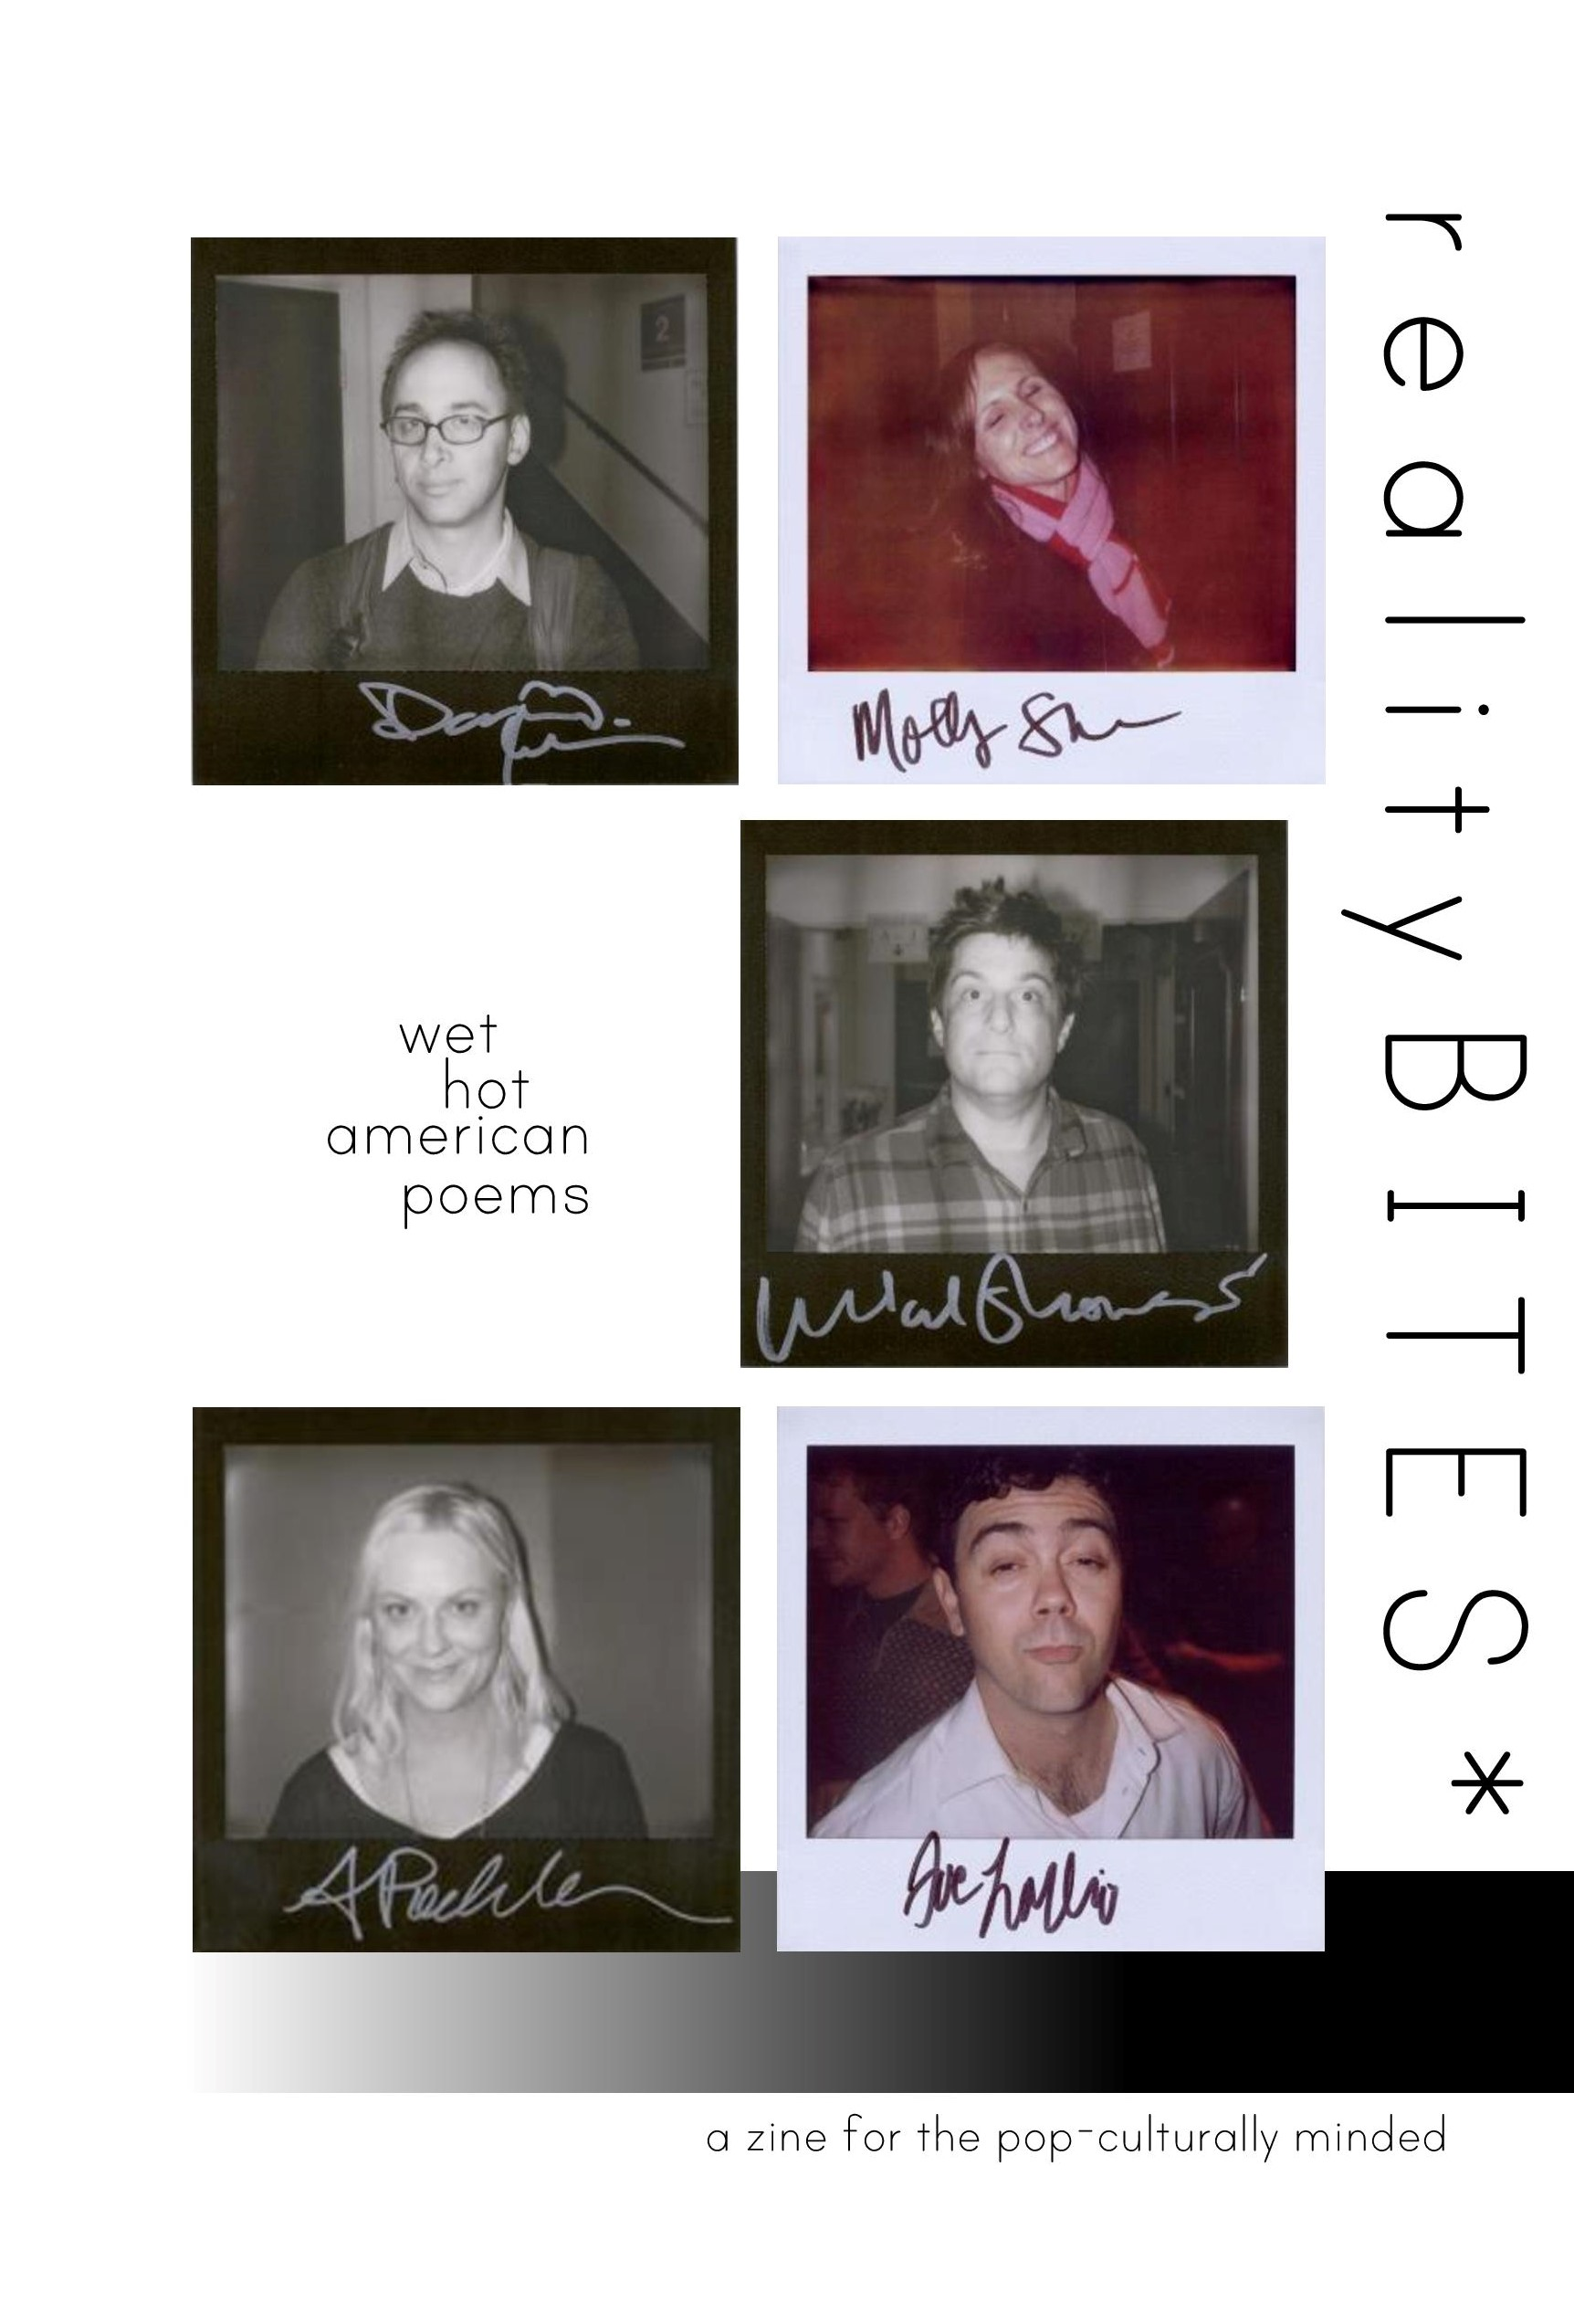 realityBITES | issue 5 - wet hot american poems